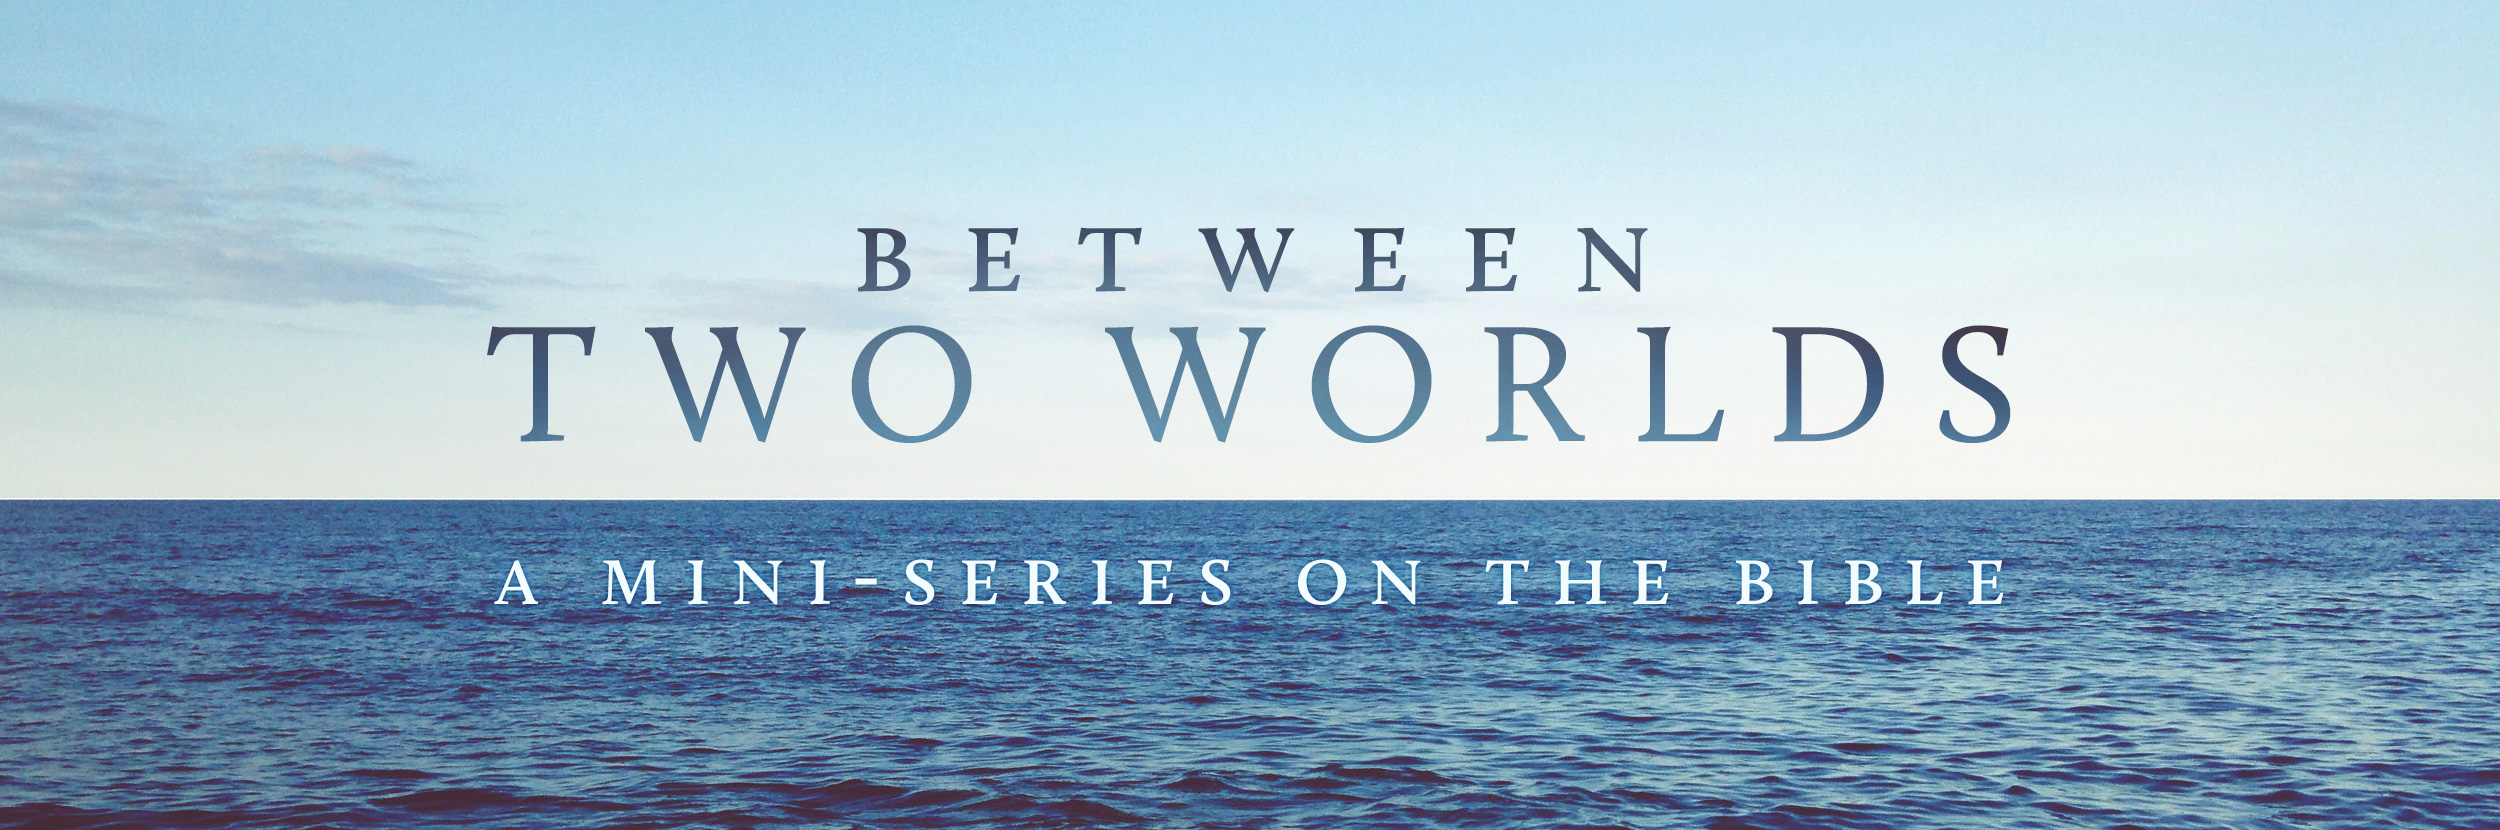 between-two-worlds-banner-2500x830.jpg